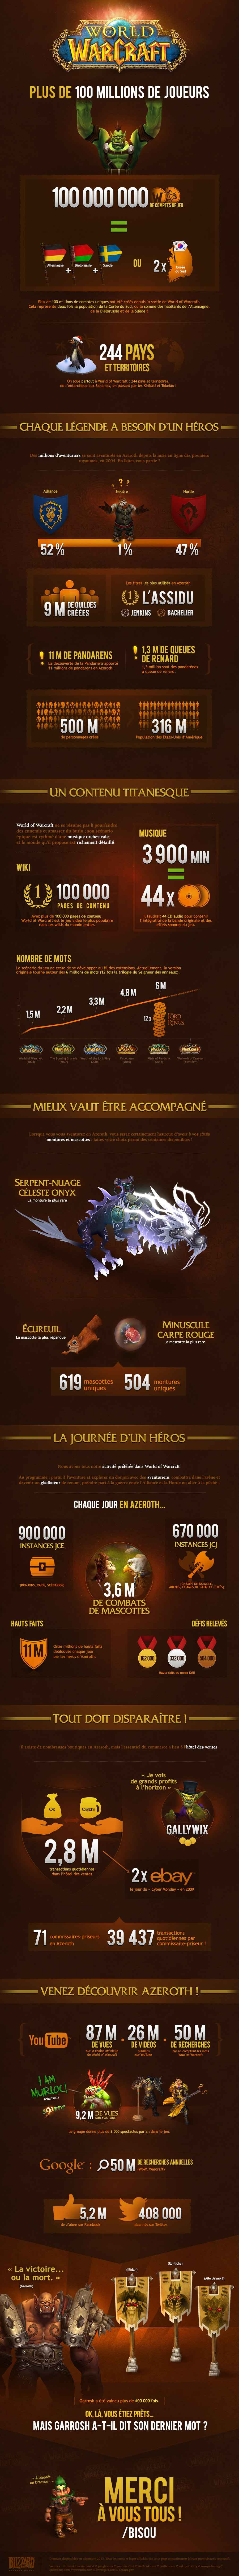 WoW_Infographic-2014_FR